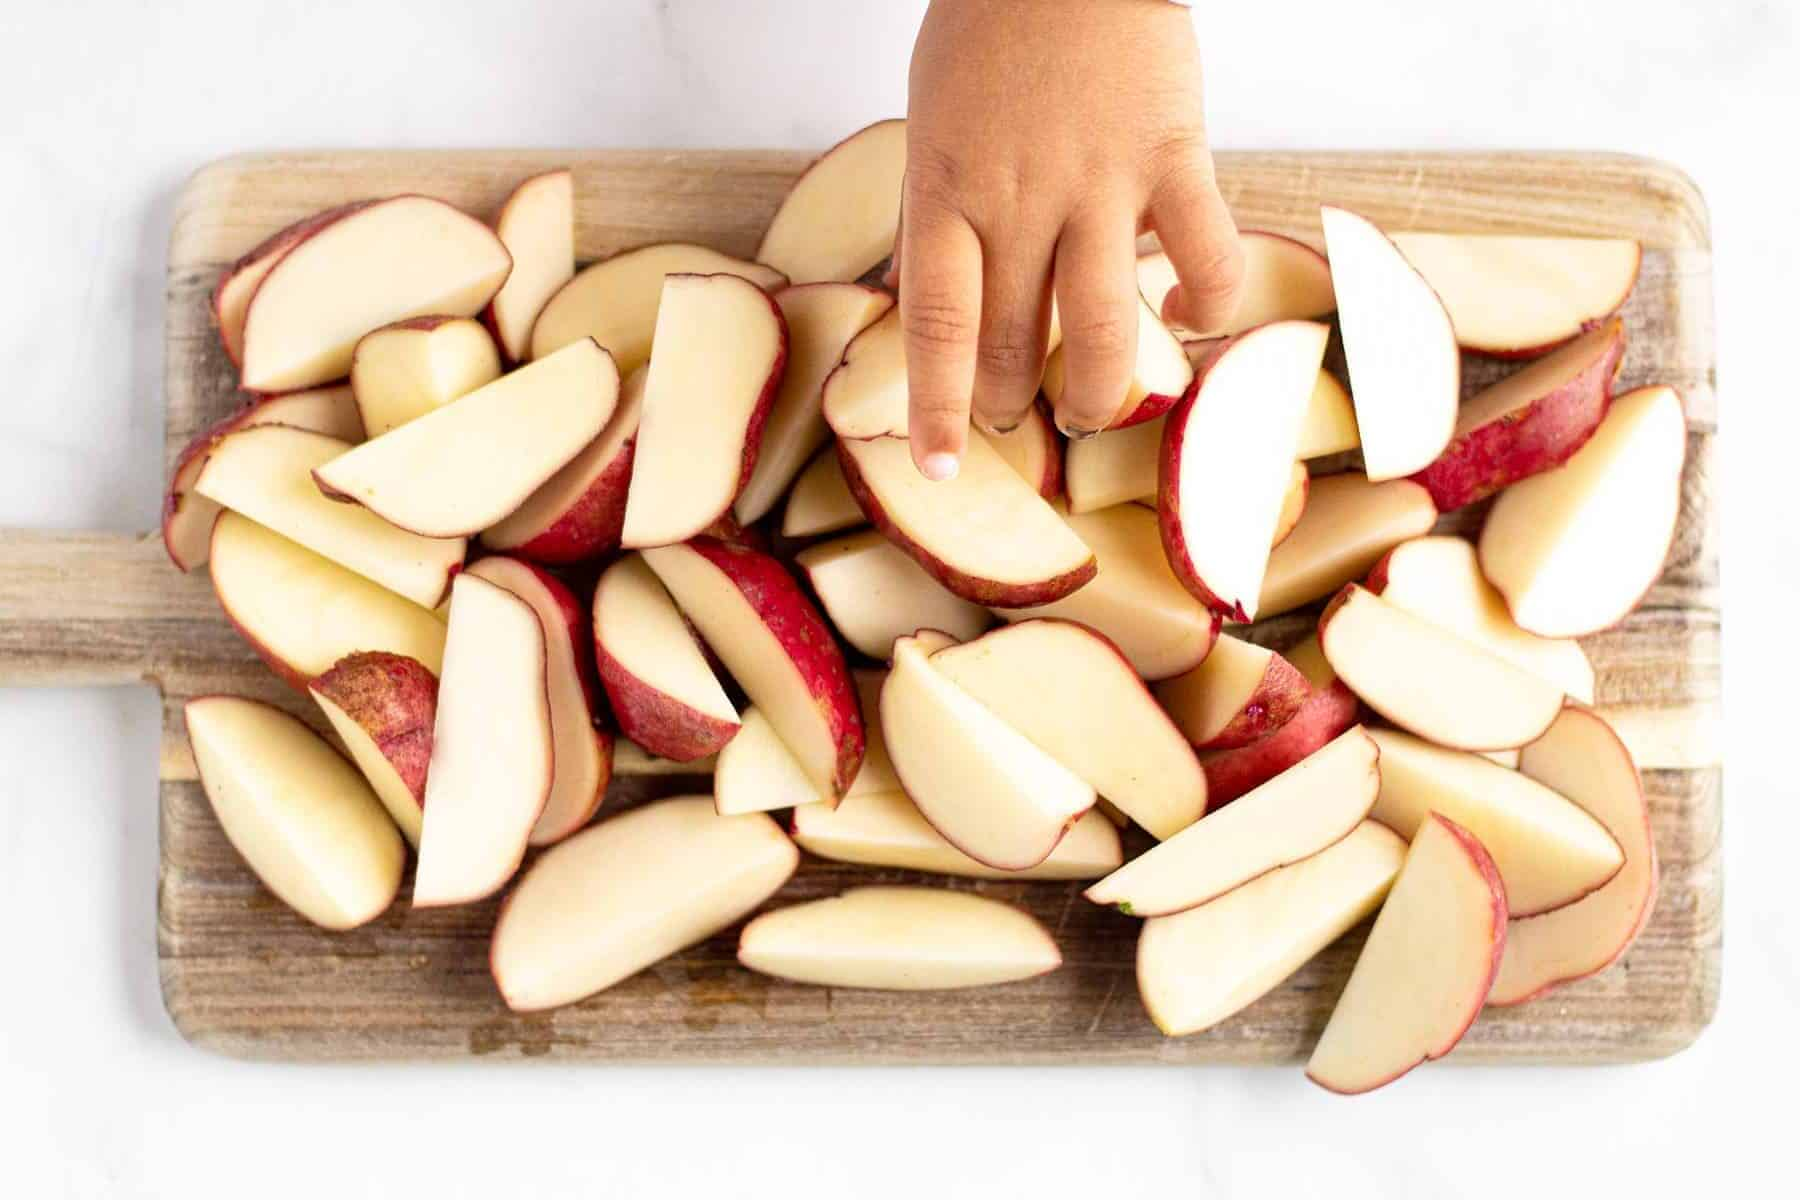 Overhead of a wooden cutting board with sliced potato wedges and a little hand reaching in and grabbing a wedge